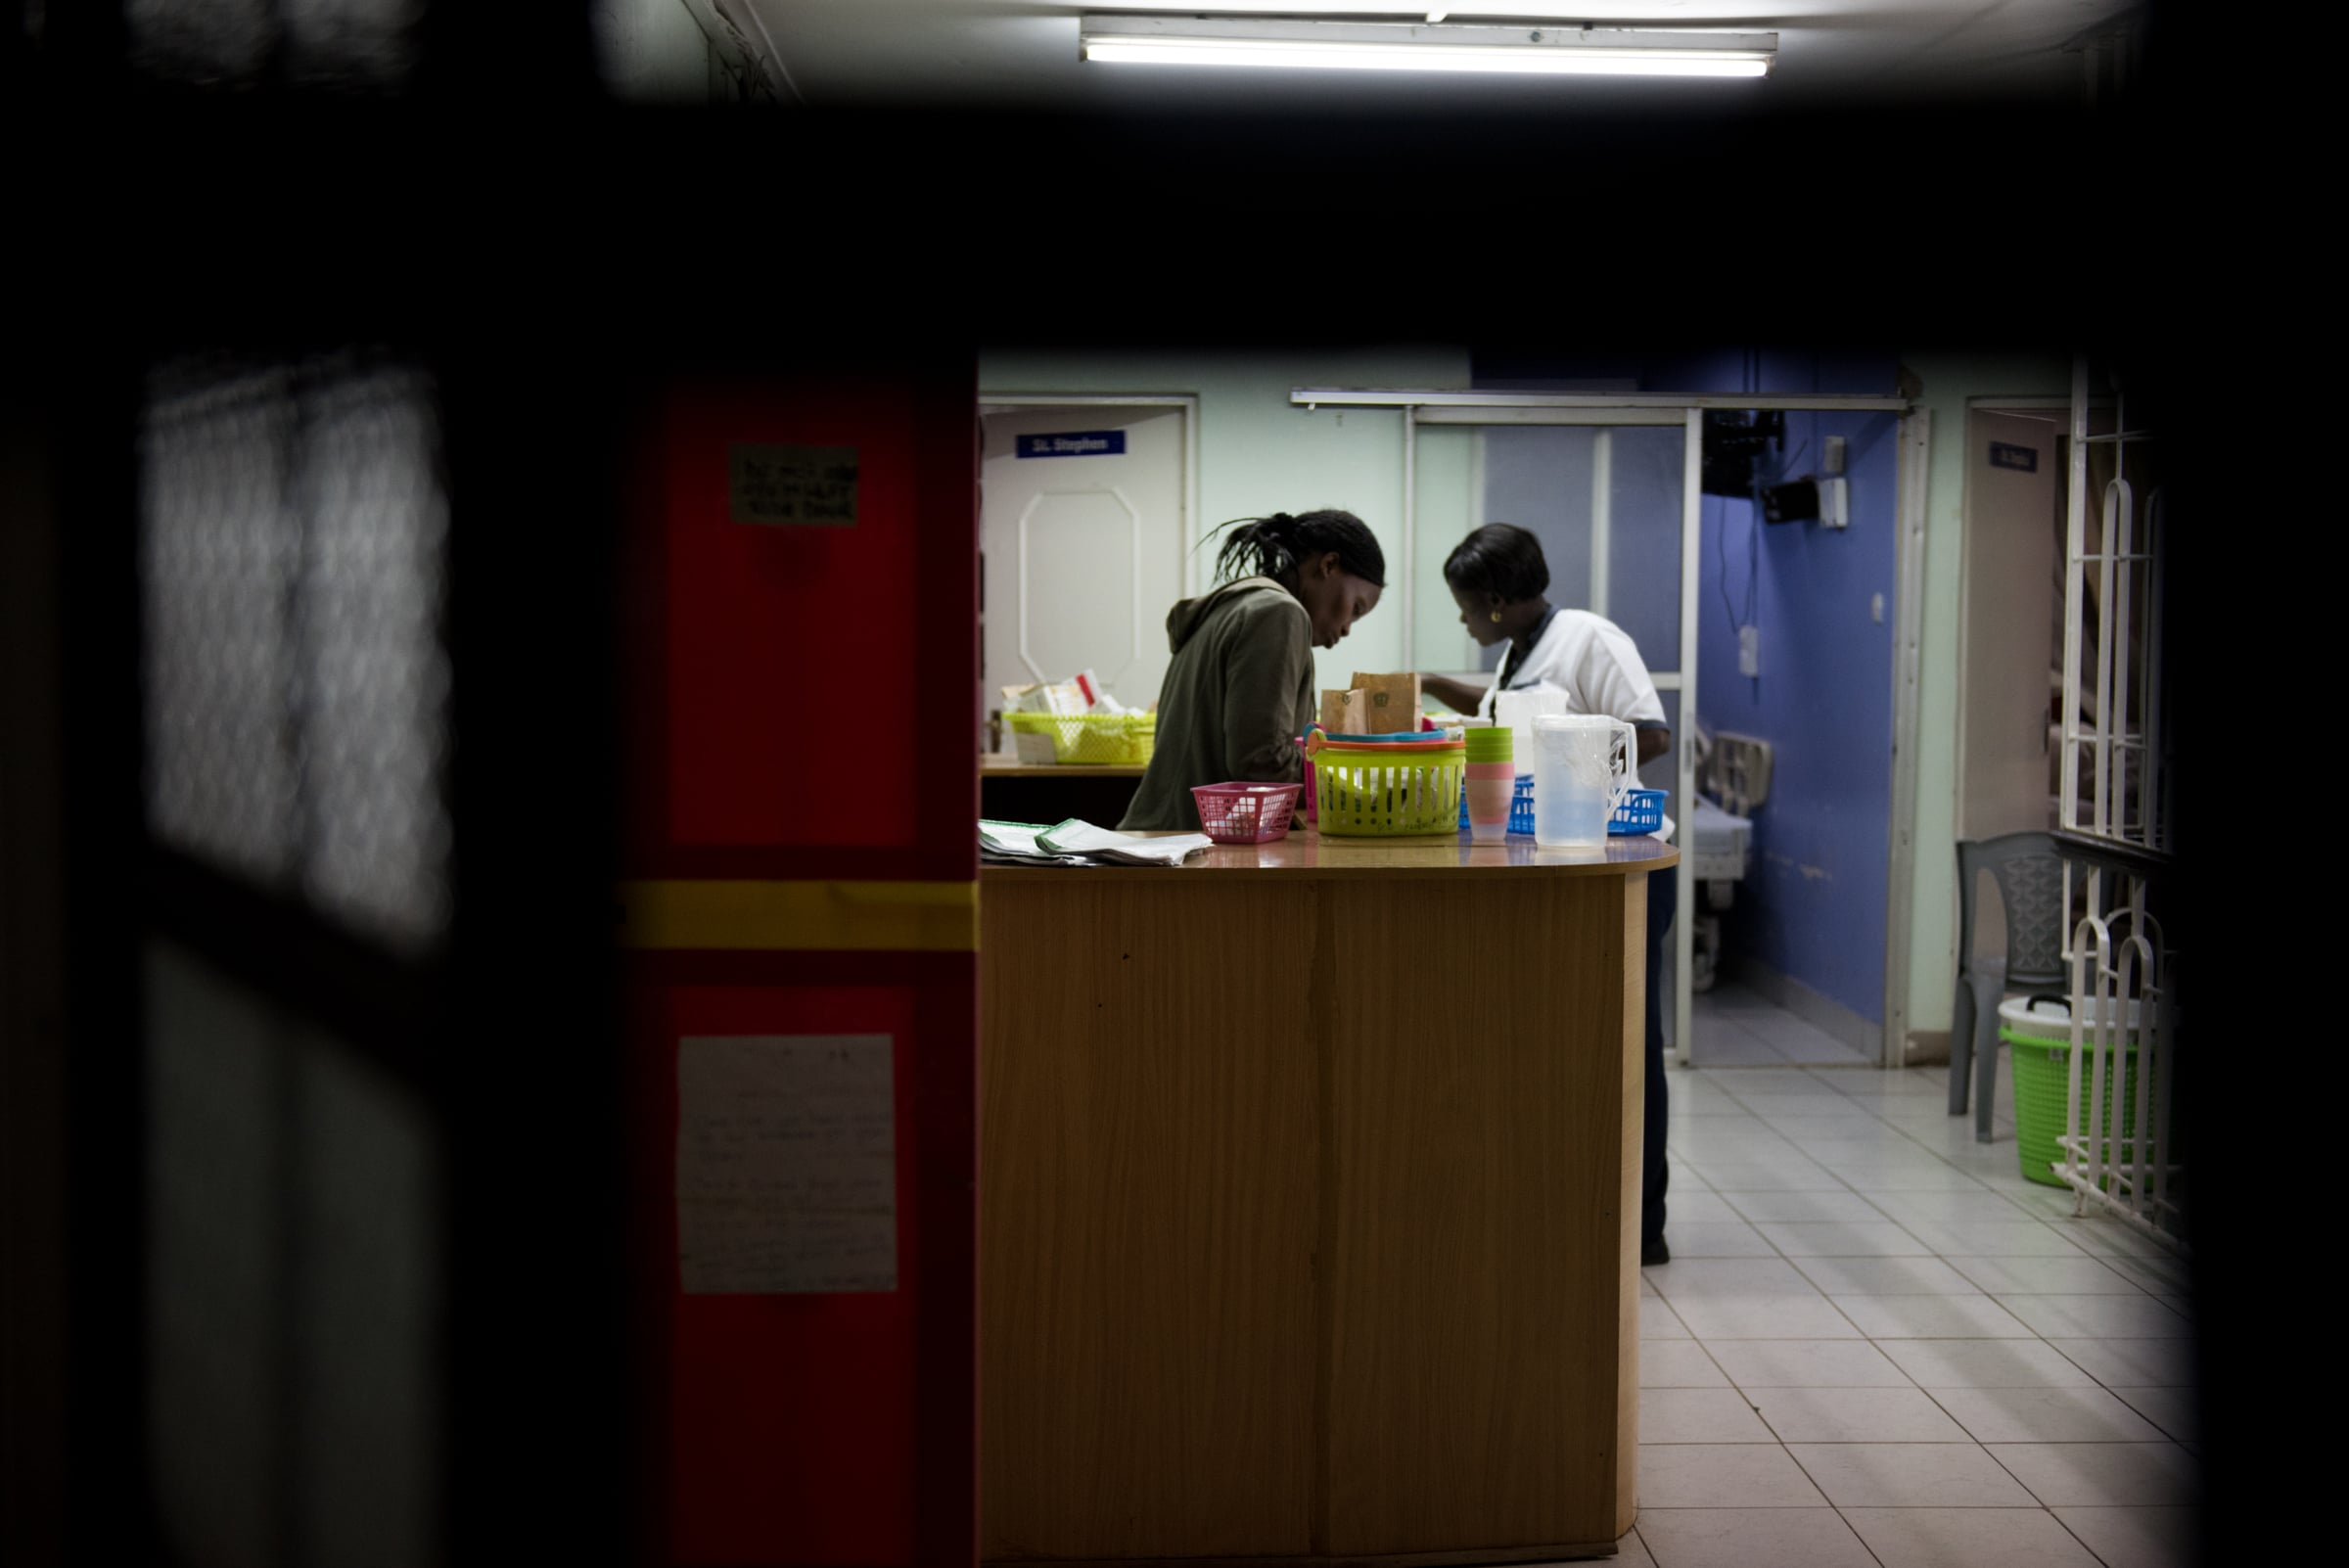 Nurse Rebecca Nandimaye, left, and Carren Asembo, prepare medications at the Nurses' Station during the night shift. Most medical professionals are not yet trained in palliative care. These nurses, who are legally barred from dispensing morphine and other opioids to patients in need, stand on the frontline of a national struggle with rising cancer diagnoses, HIV-related complications and other life-limiting illnesses.